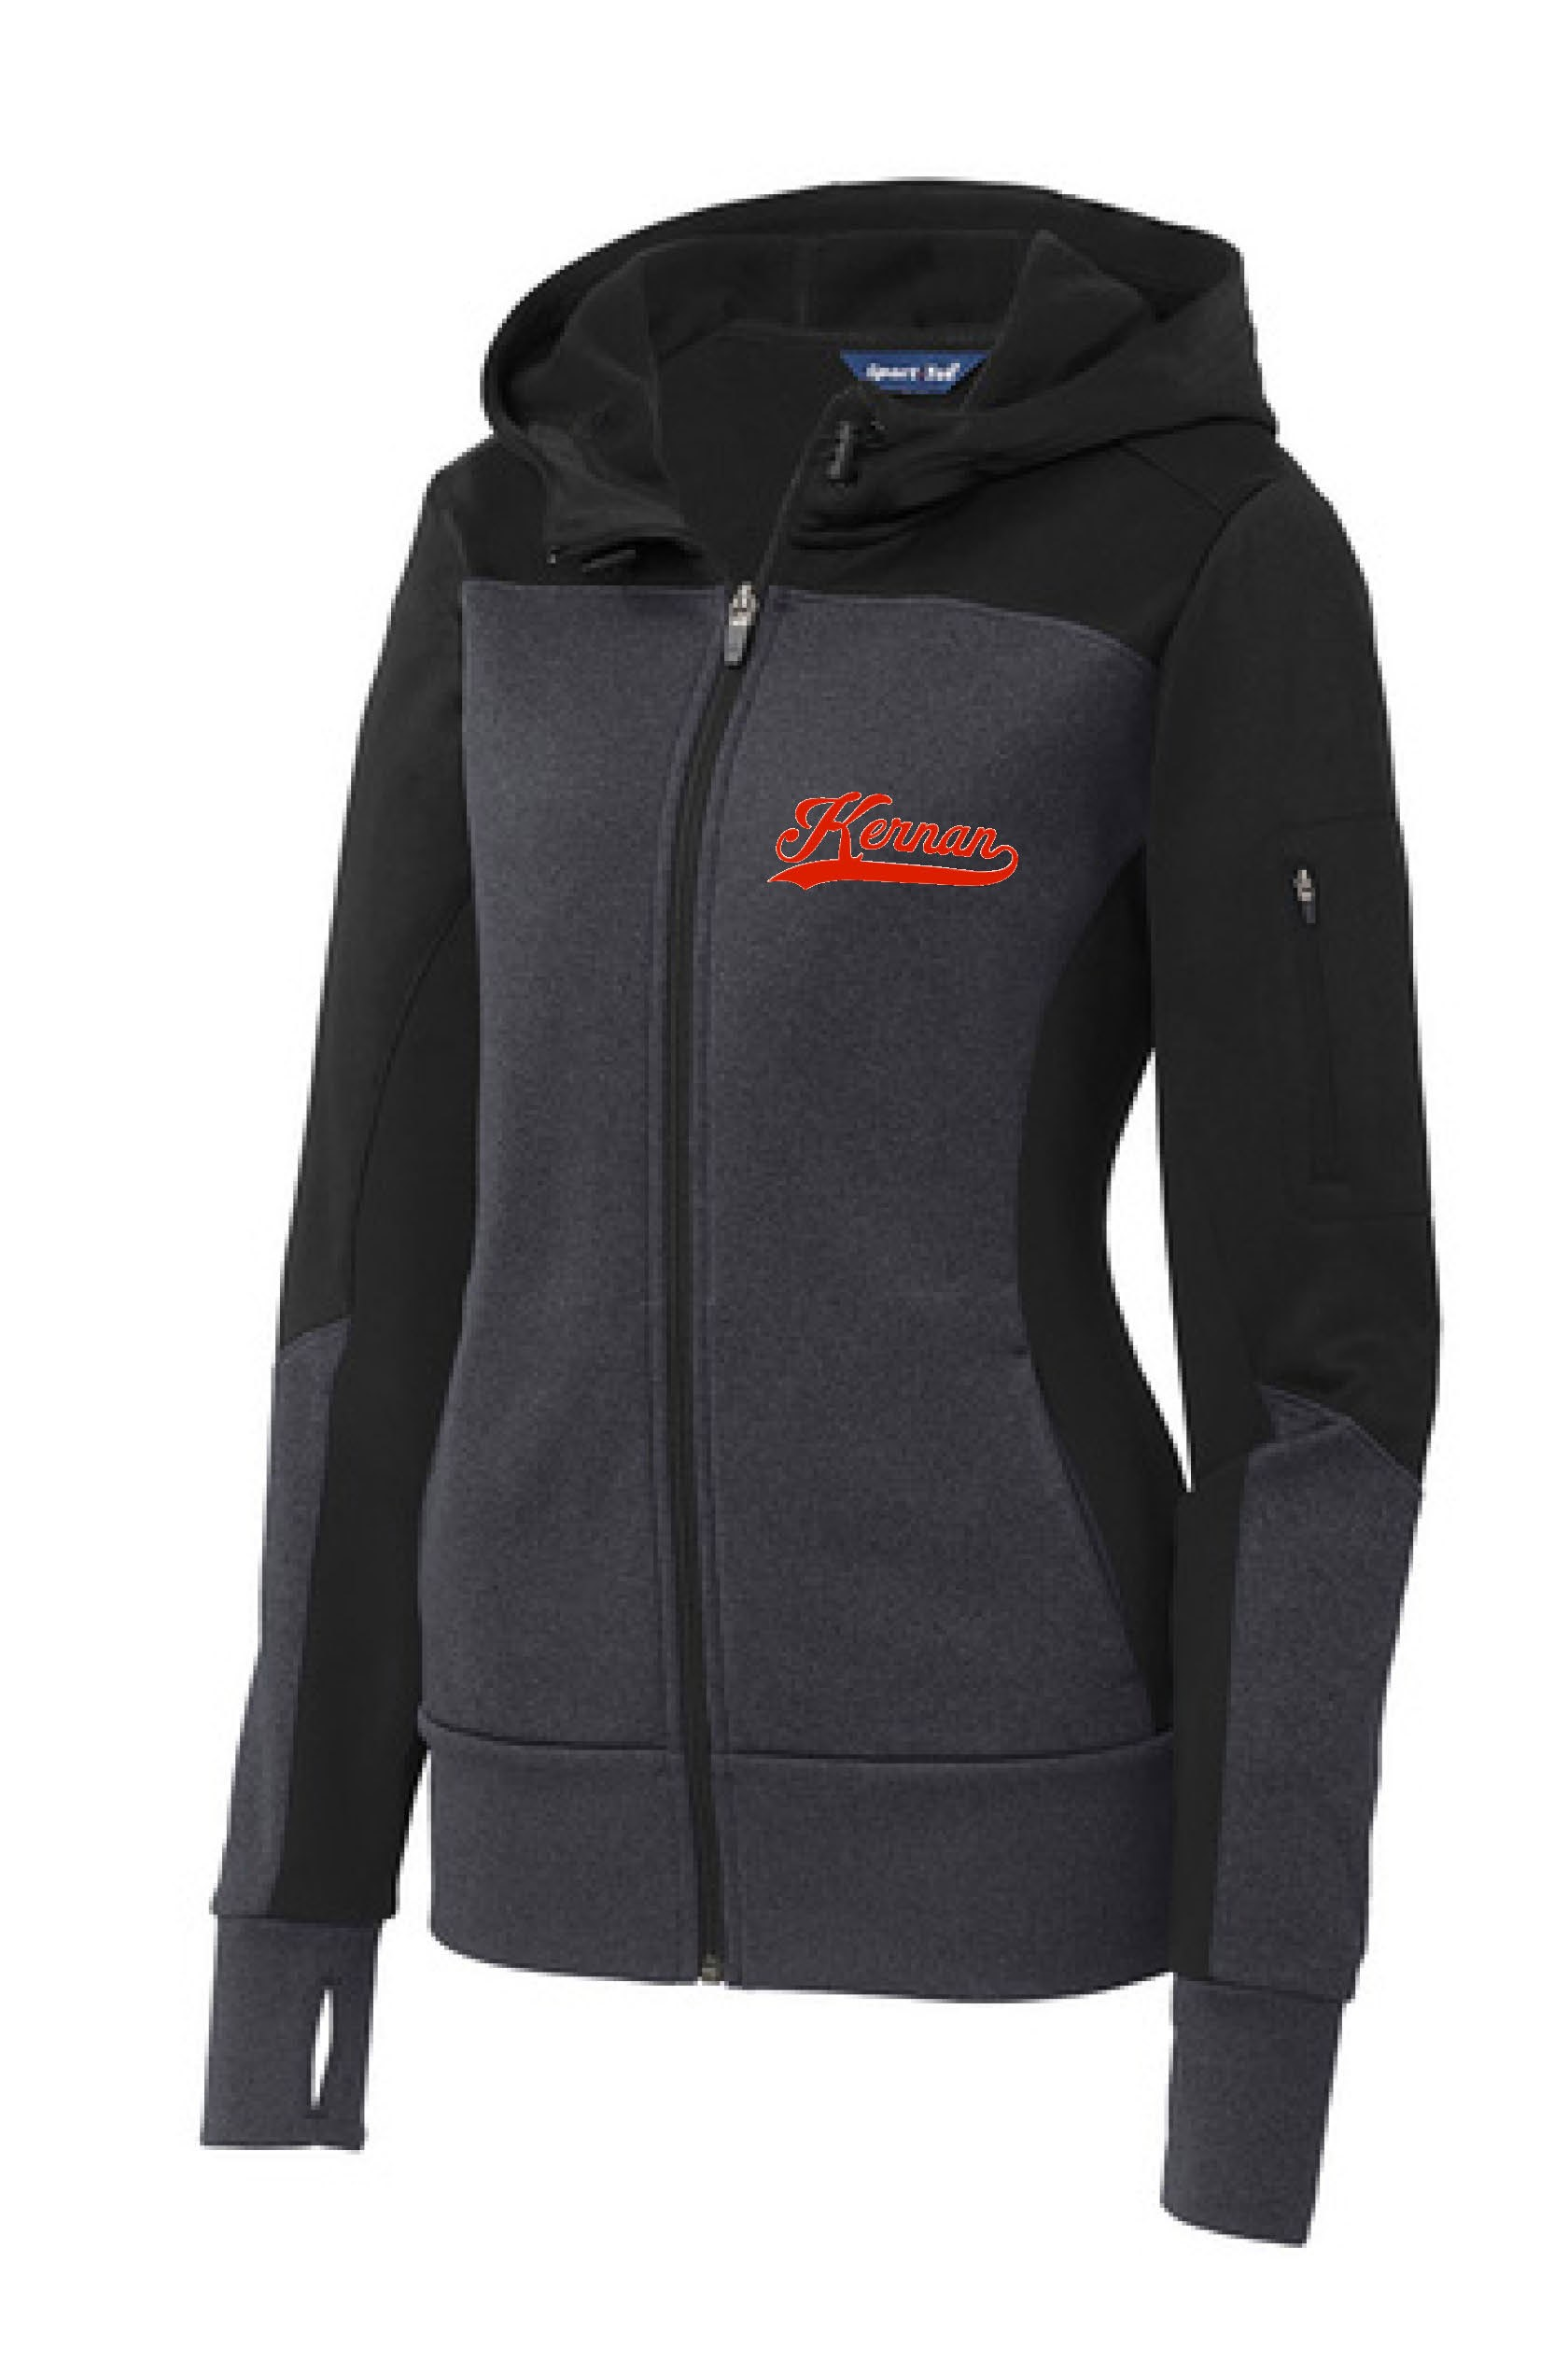 Kernan Ladies Sport-Tek Colorblock Full Zip Hooded Jacket